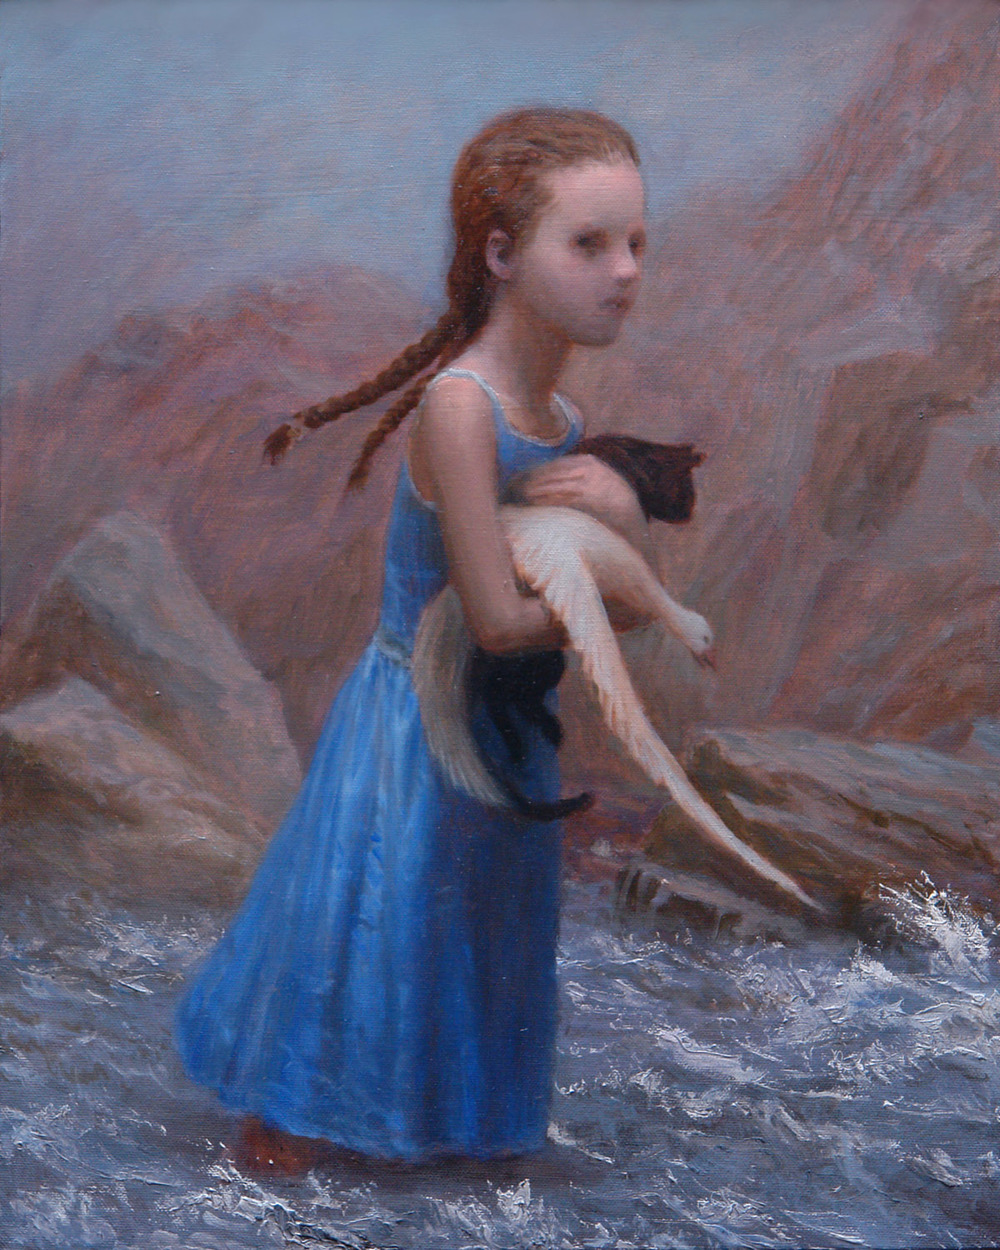 Runaway , oil on canvas, 20 x 16 in, 2006